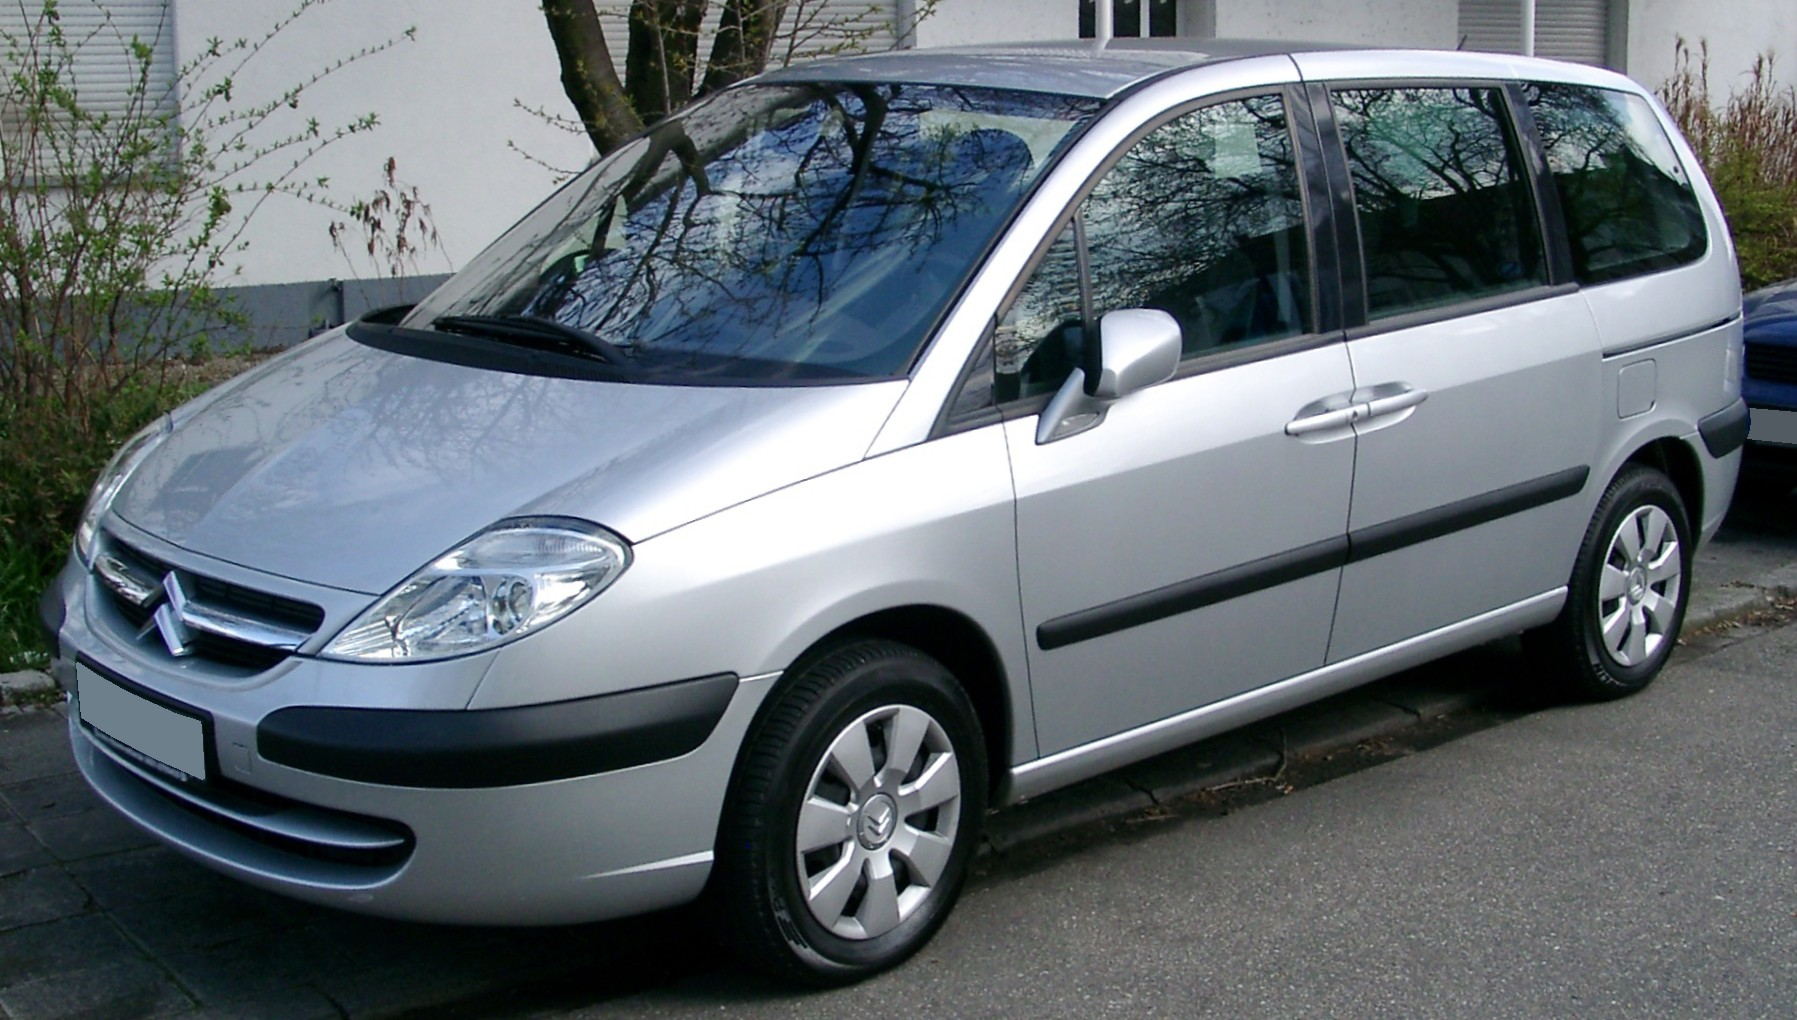 CITROEN C8 brown